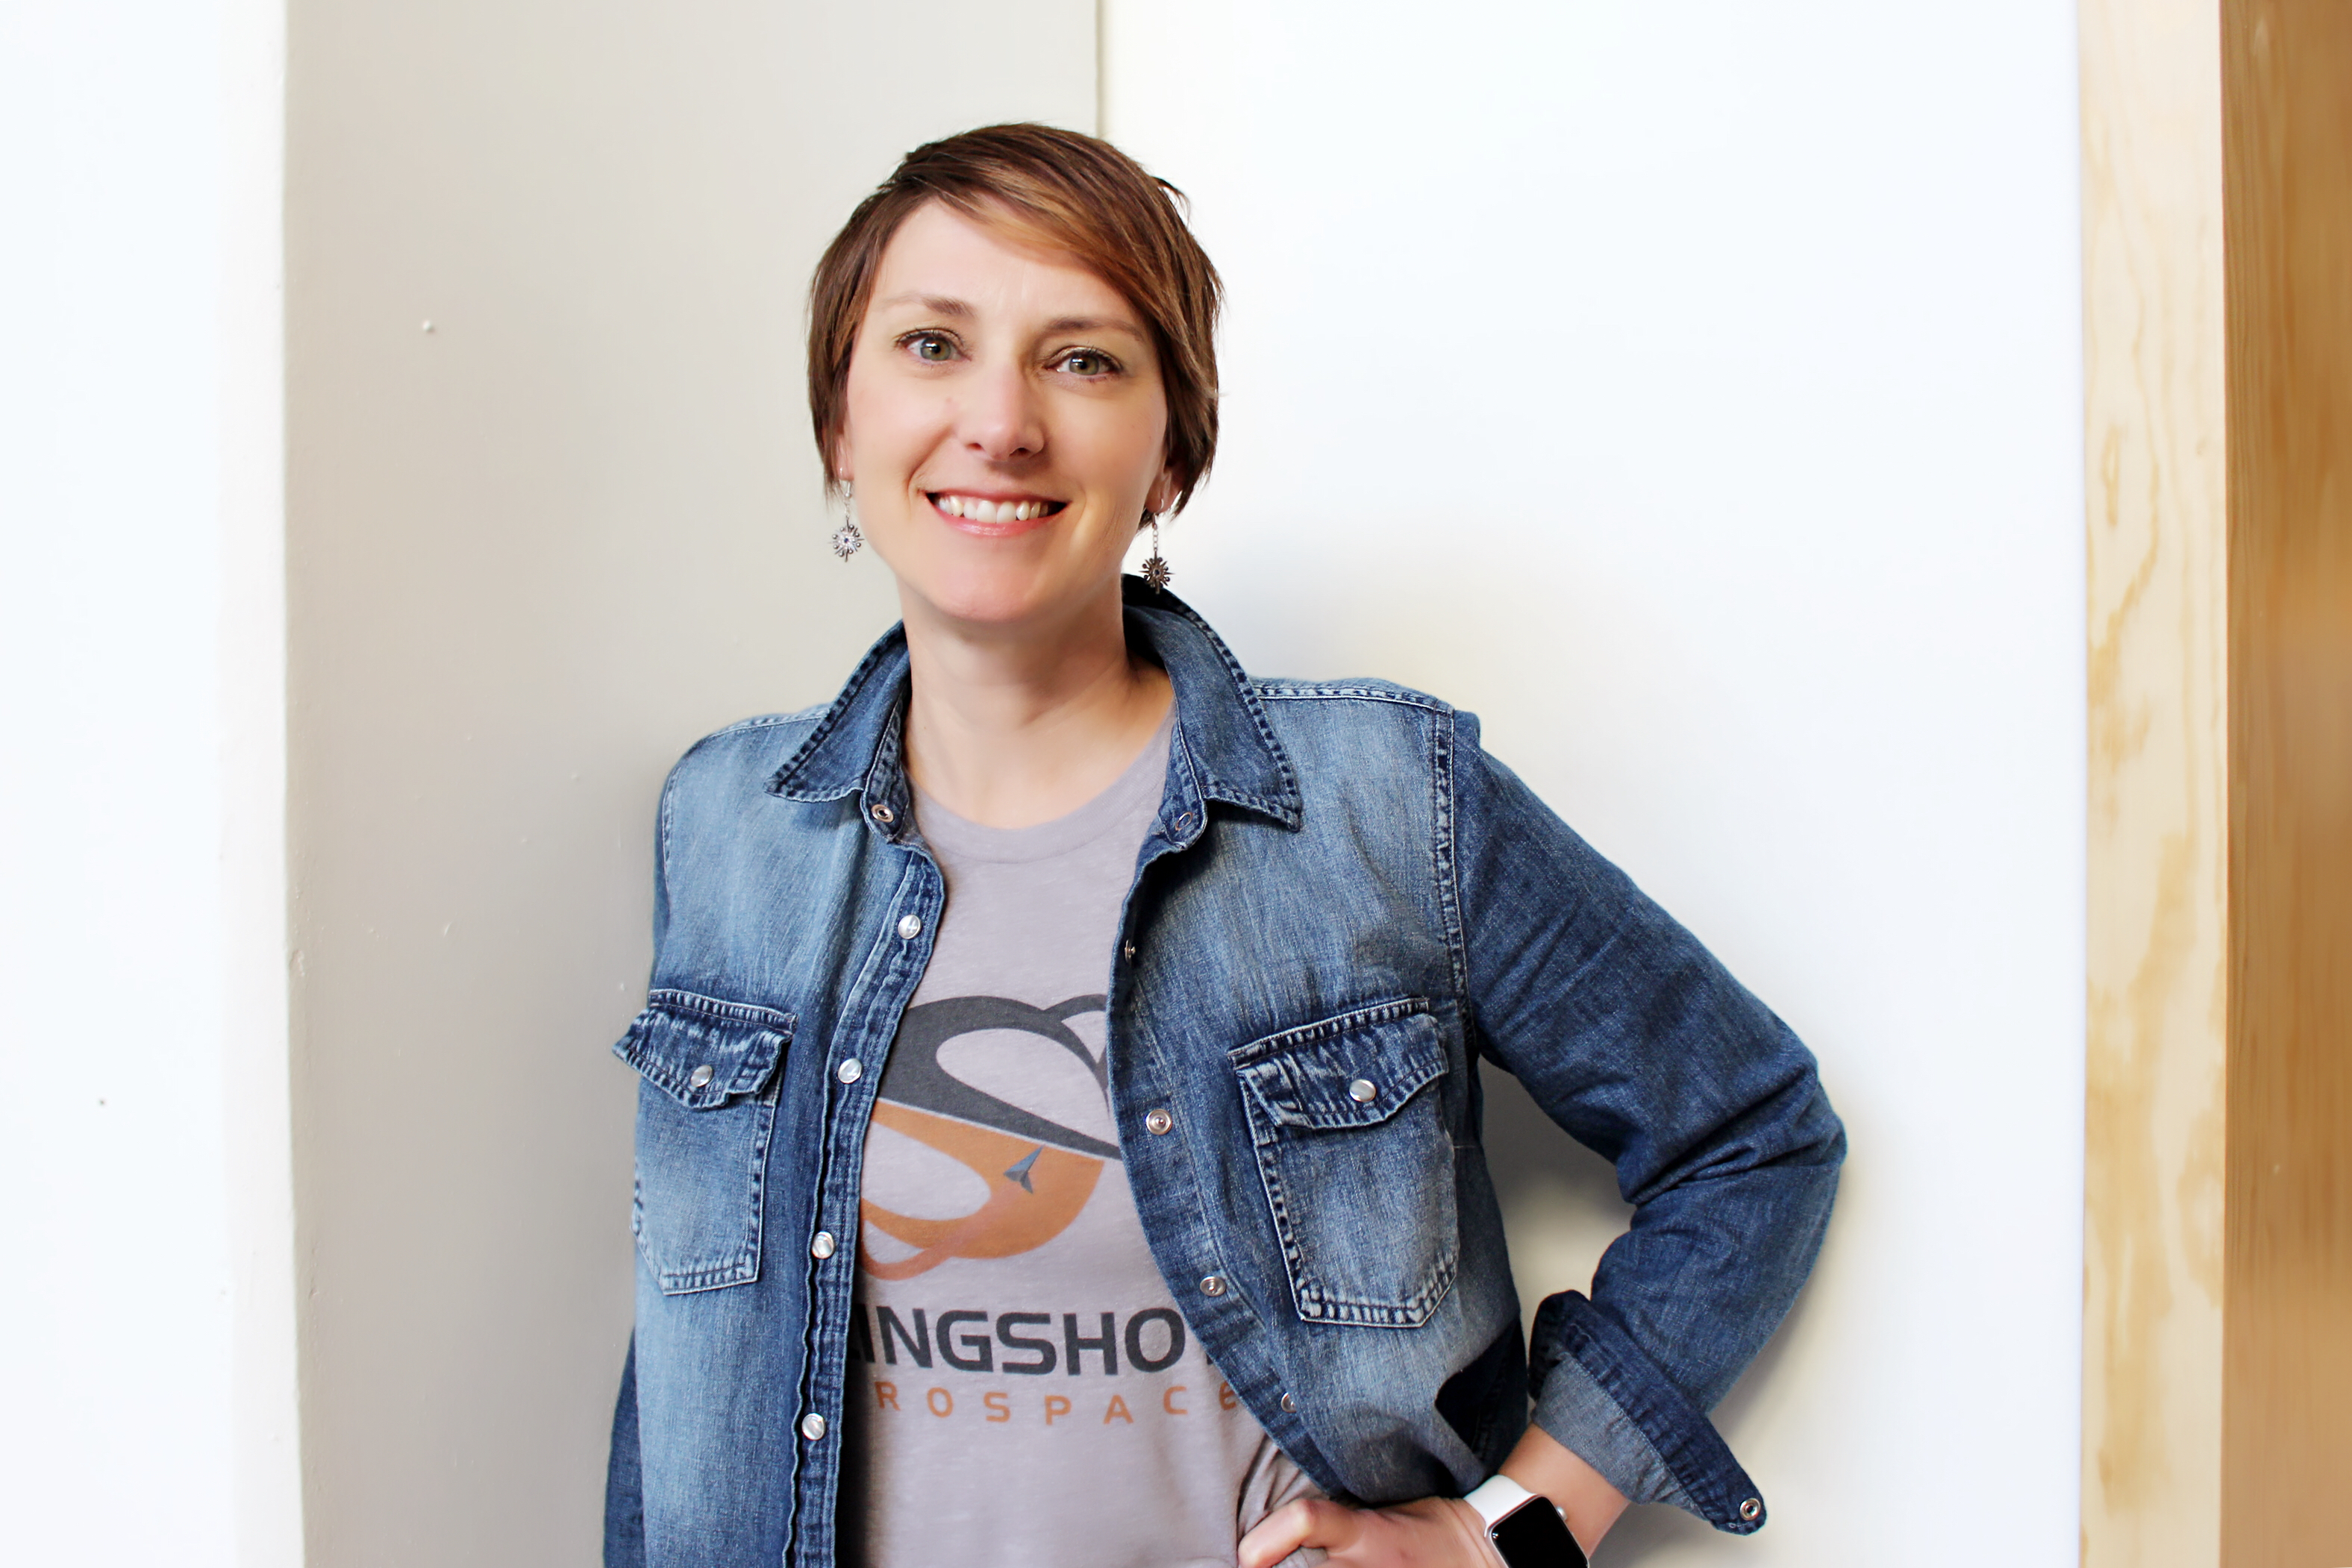 melanie stricklan slingshot aerospace cross campus south bay el segundo coworking